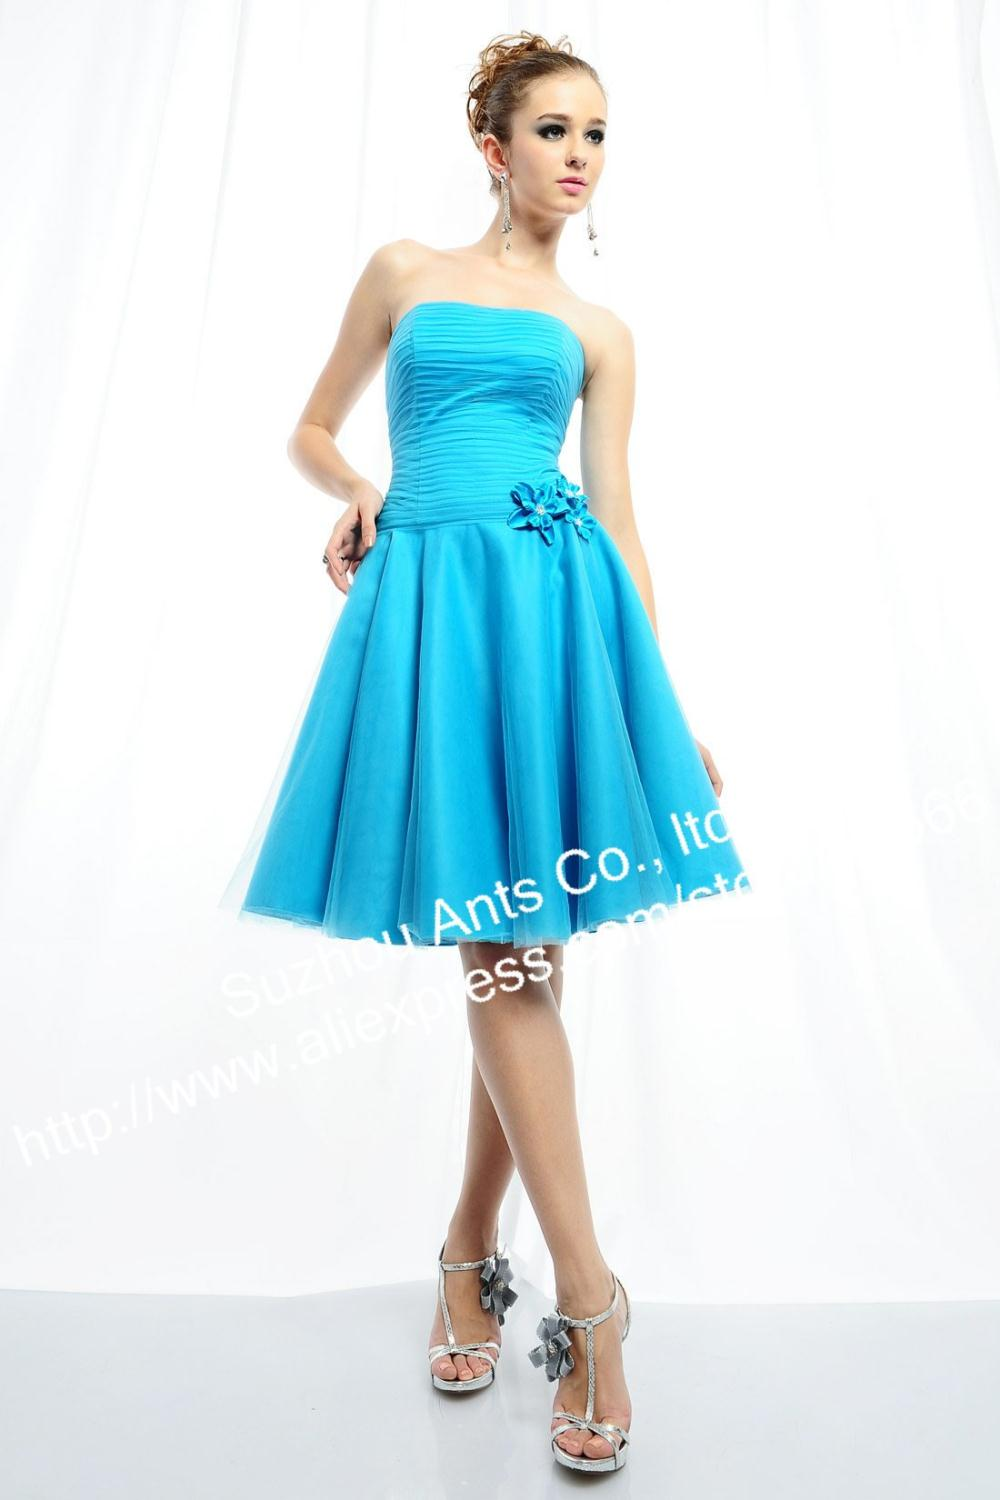 Discount a line sweetheart modest light blue short bridesmaid discount a line sweetheart modest light blue short bridesmaid dress tlf611 in bridesmaid dresses from weddings events on aliexpress alibaba group ombrellifo Image collections